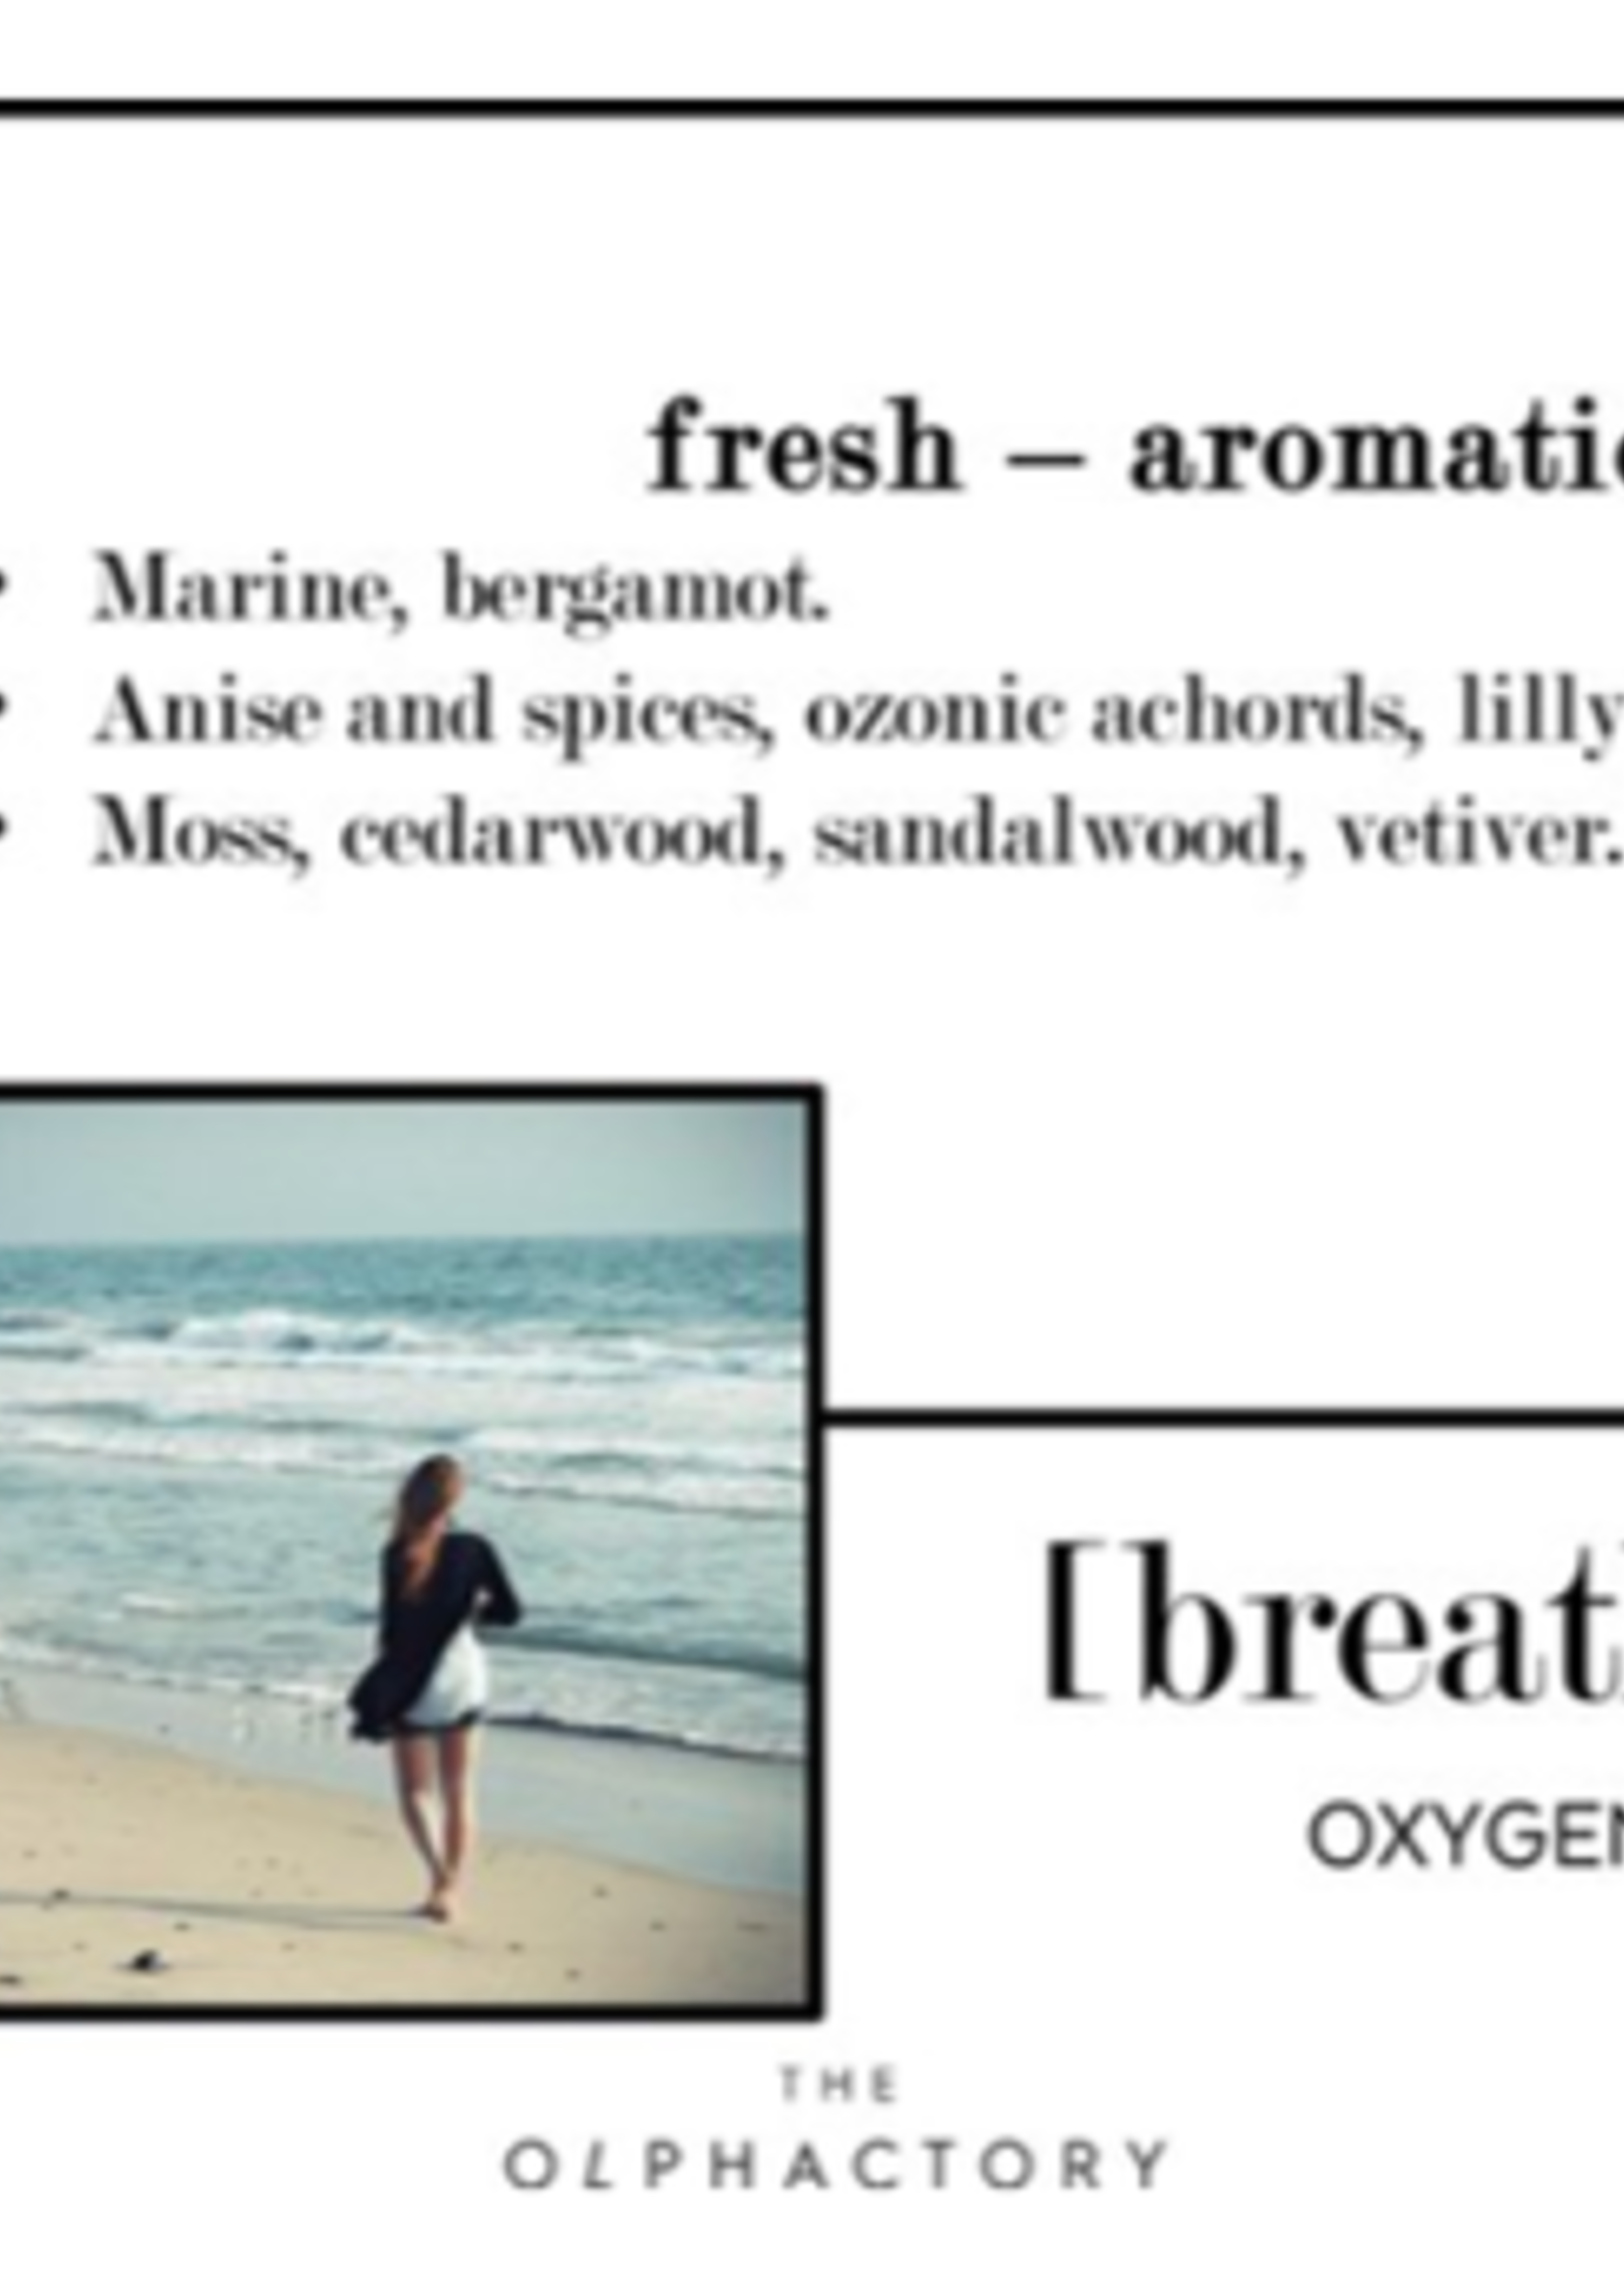 The Olphactory The Olphactory luxe geurkaars Breathe Oxygen